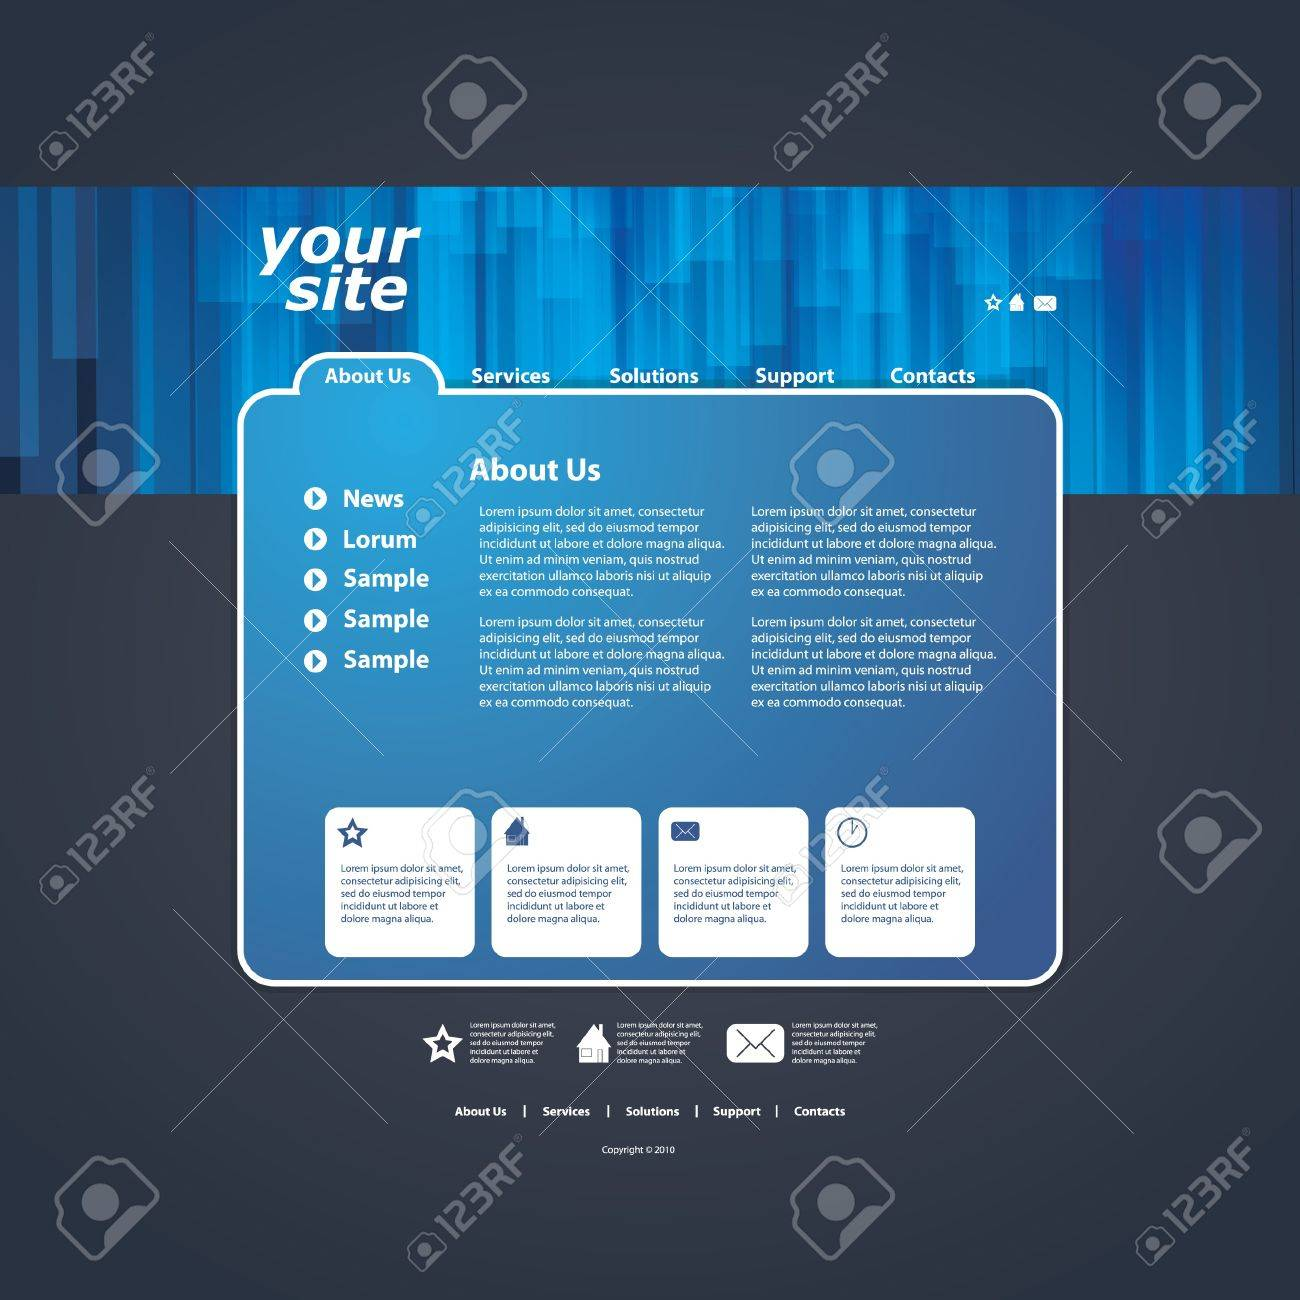 Abstract business web site design template vector Stock Vector - 10979578